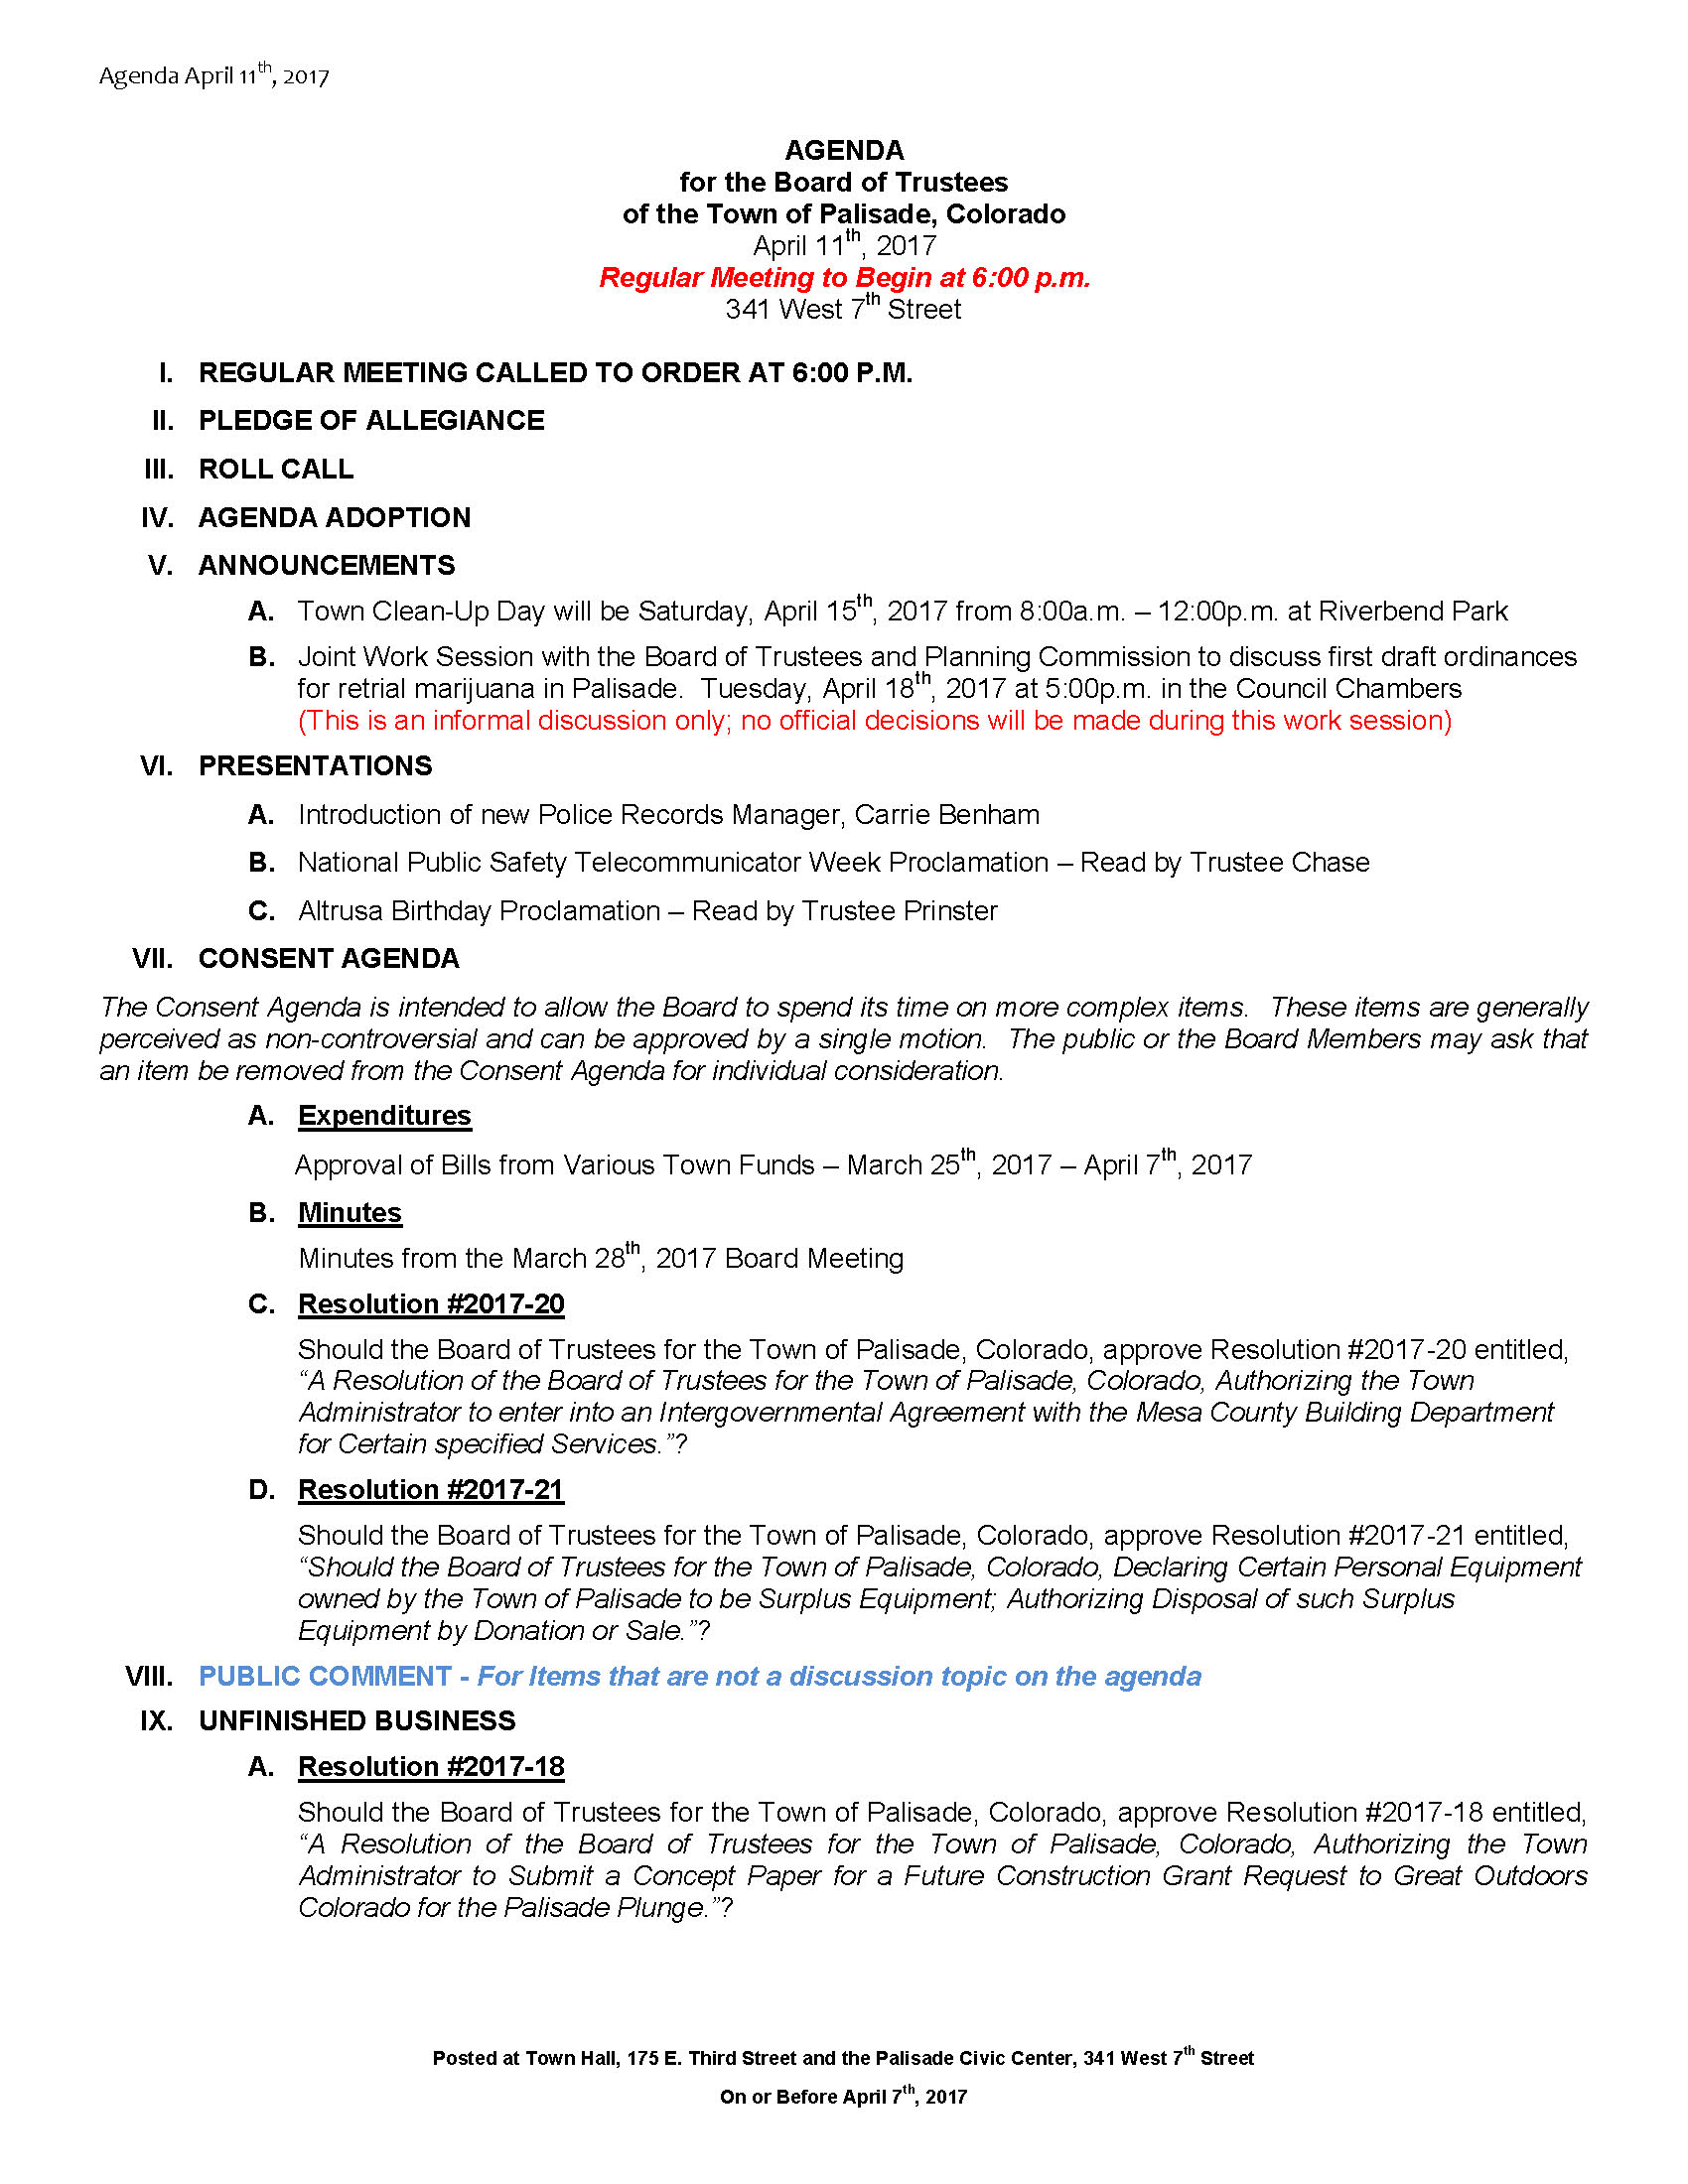 April 11th 2017 Board Meeting Agenda Page 1